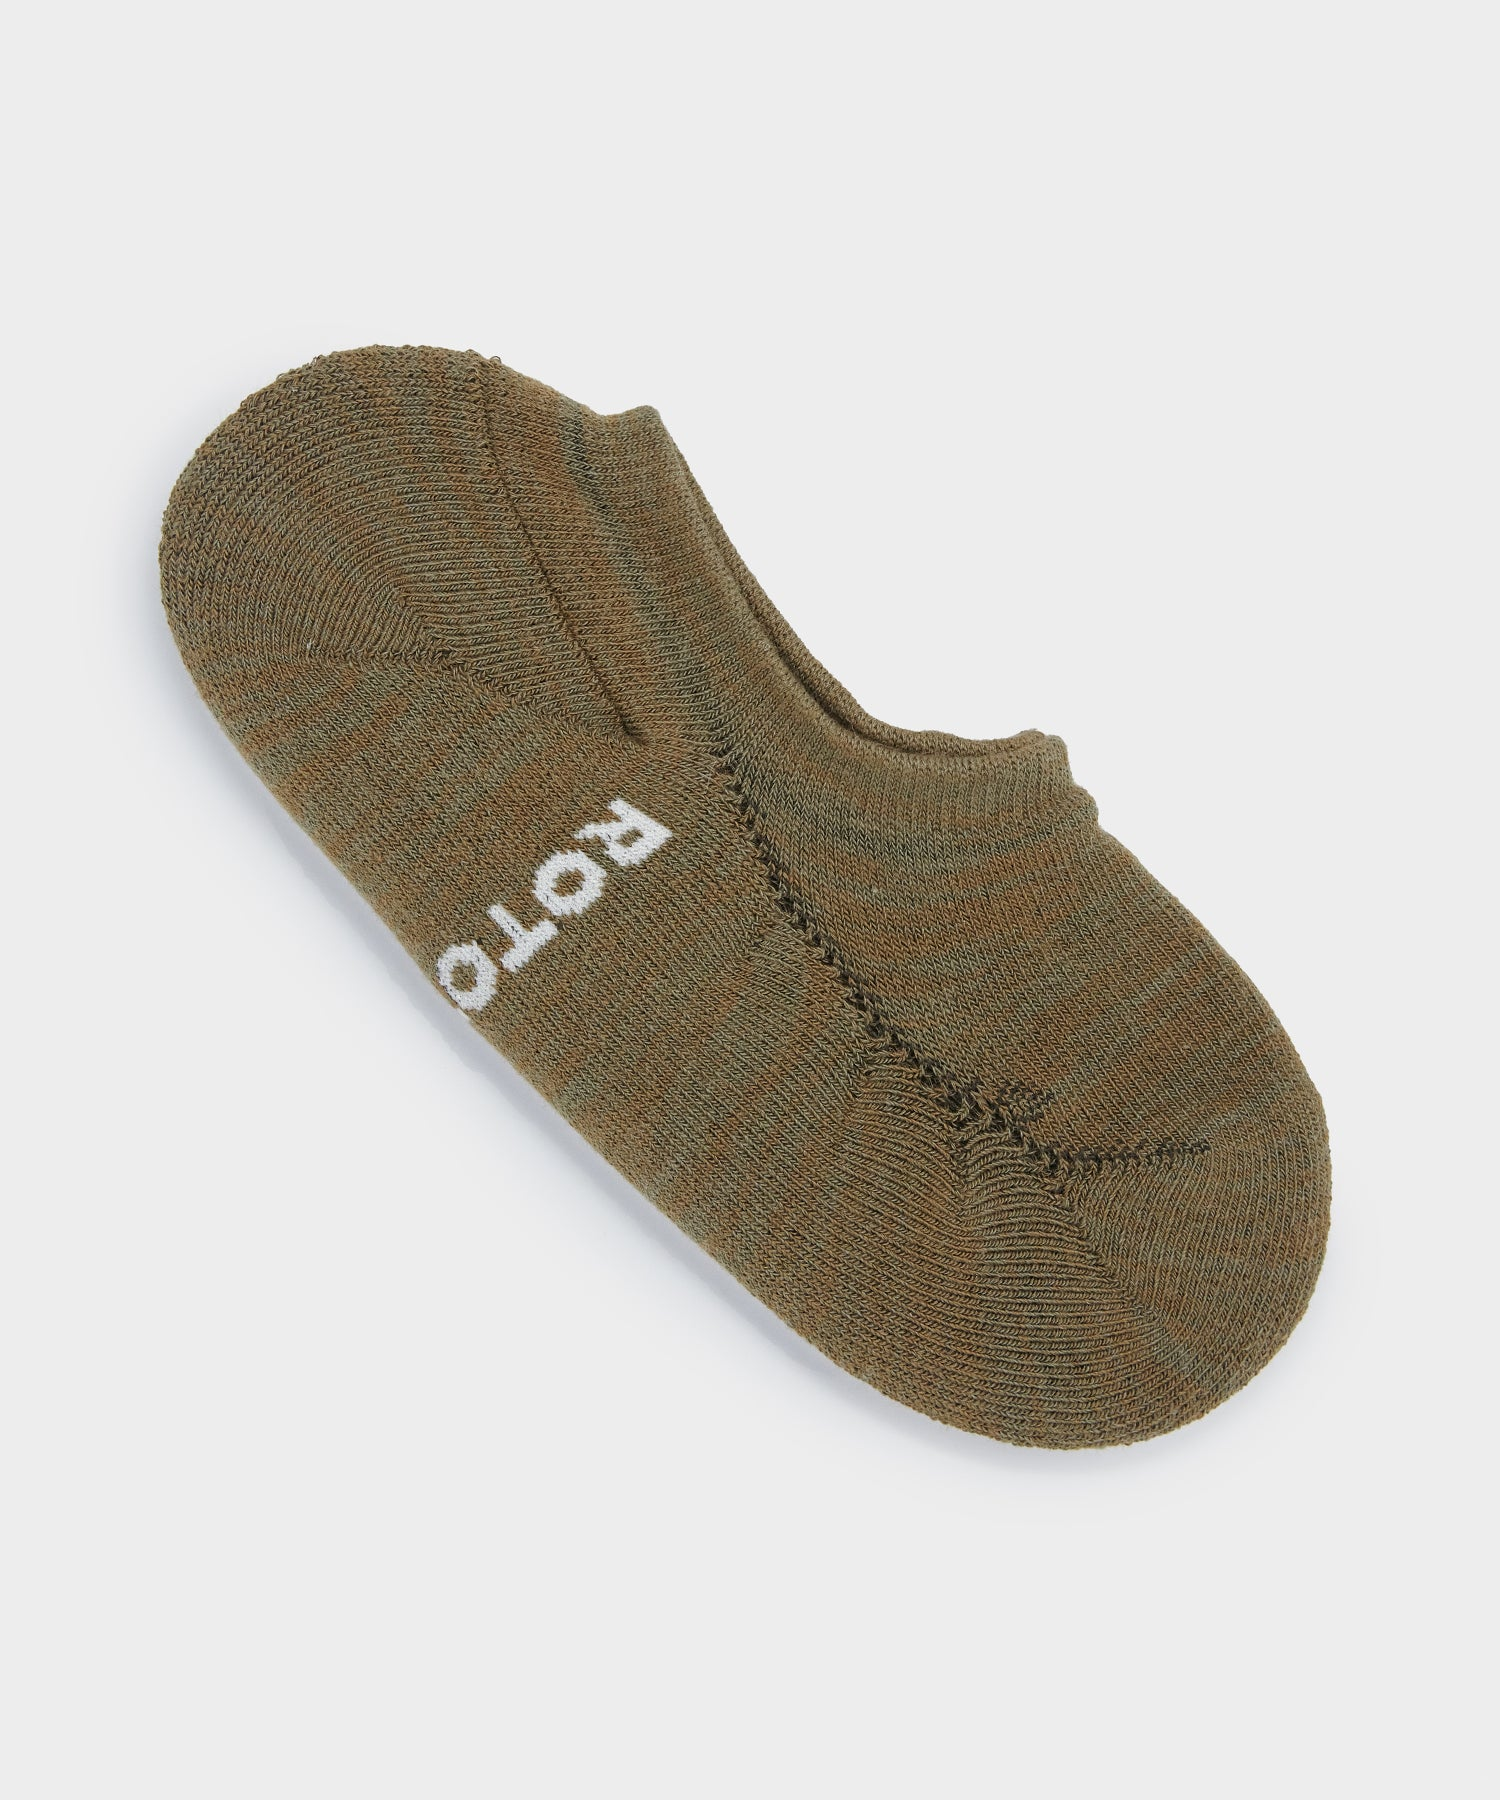 RoToTo Pile Foot Cover in Washed Olive